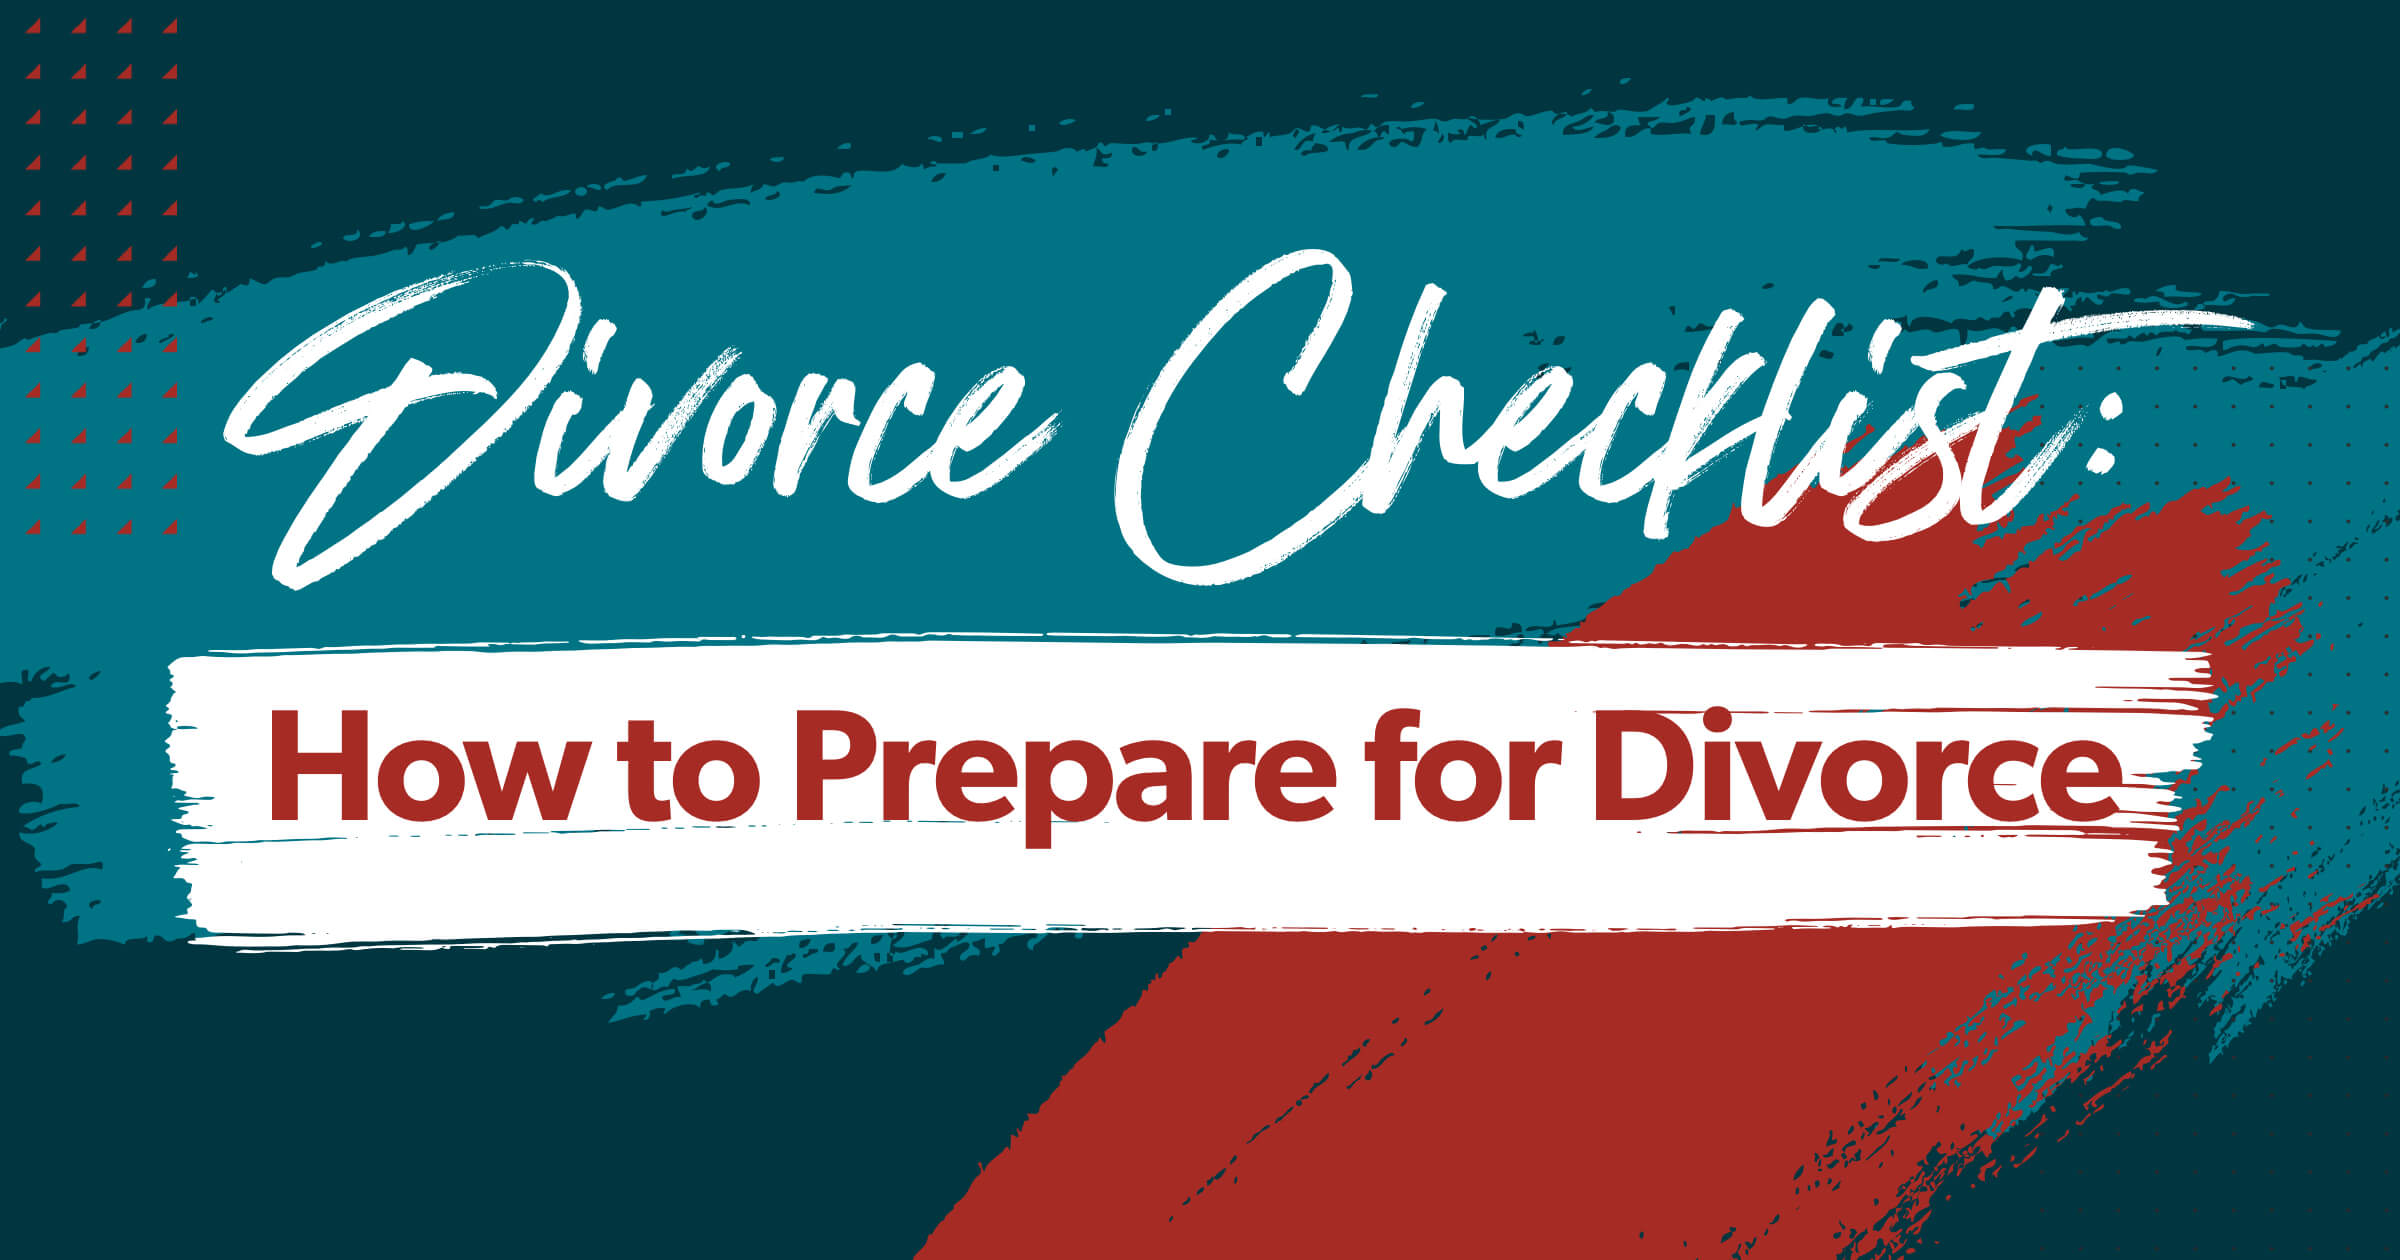 how to prepare for divorce checklist